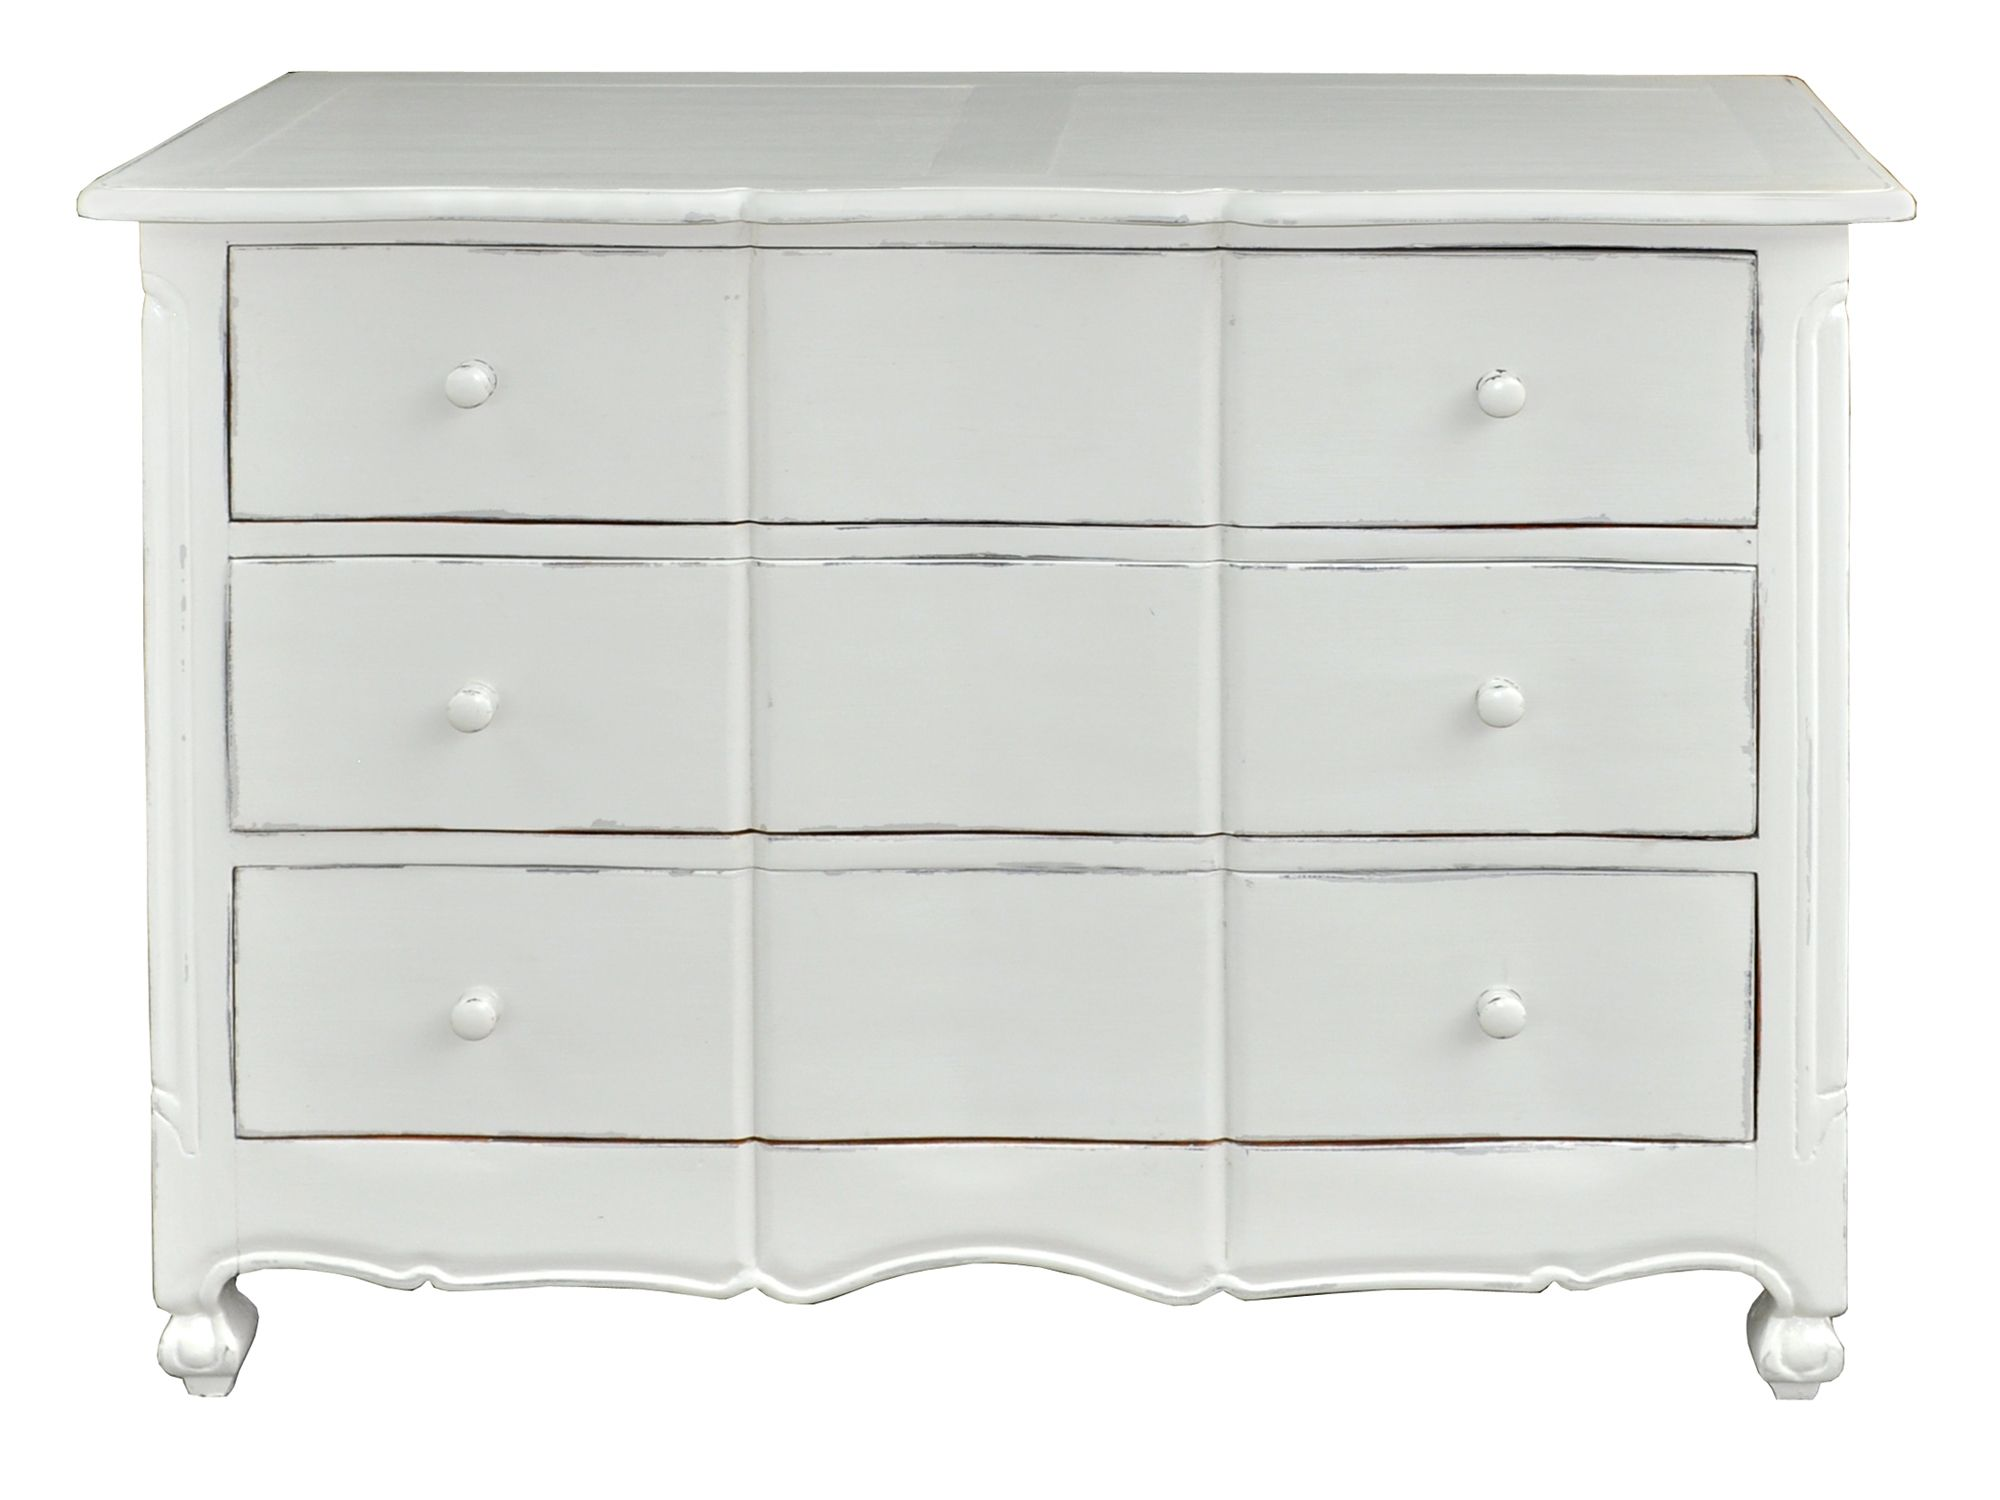 Meadow 3 drawer dresser light grey